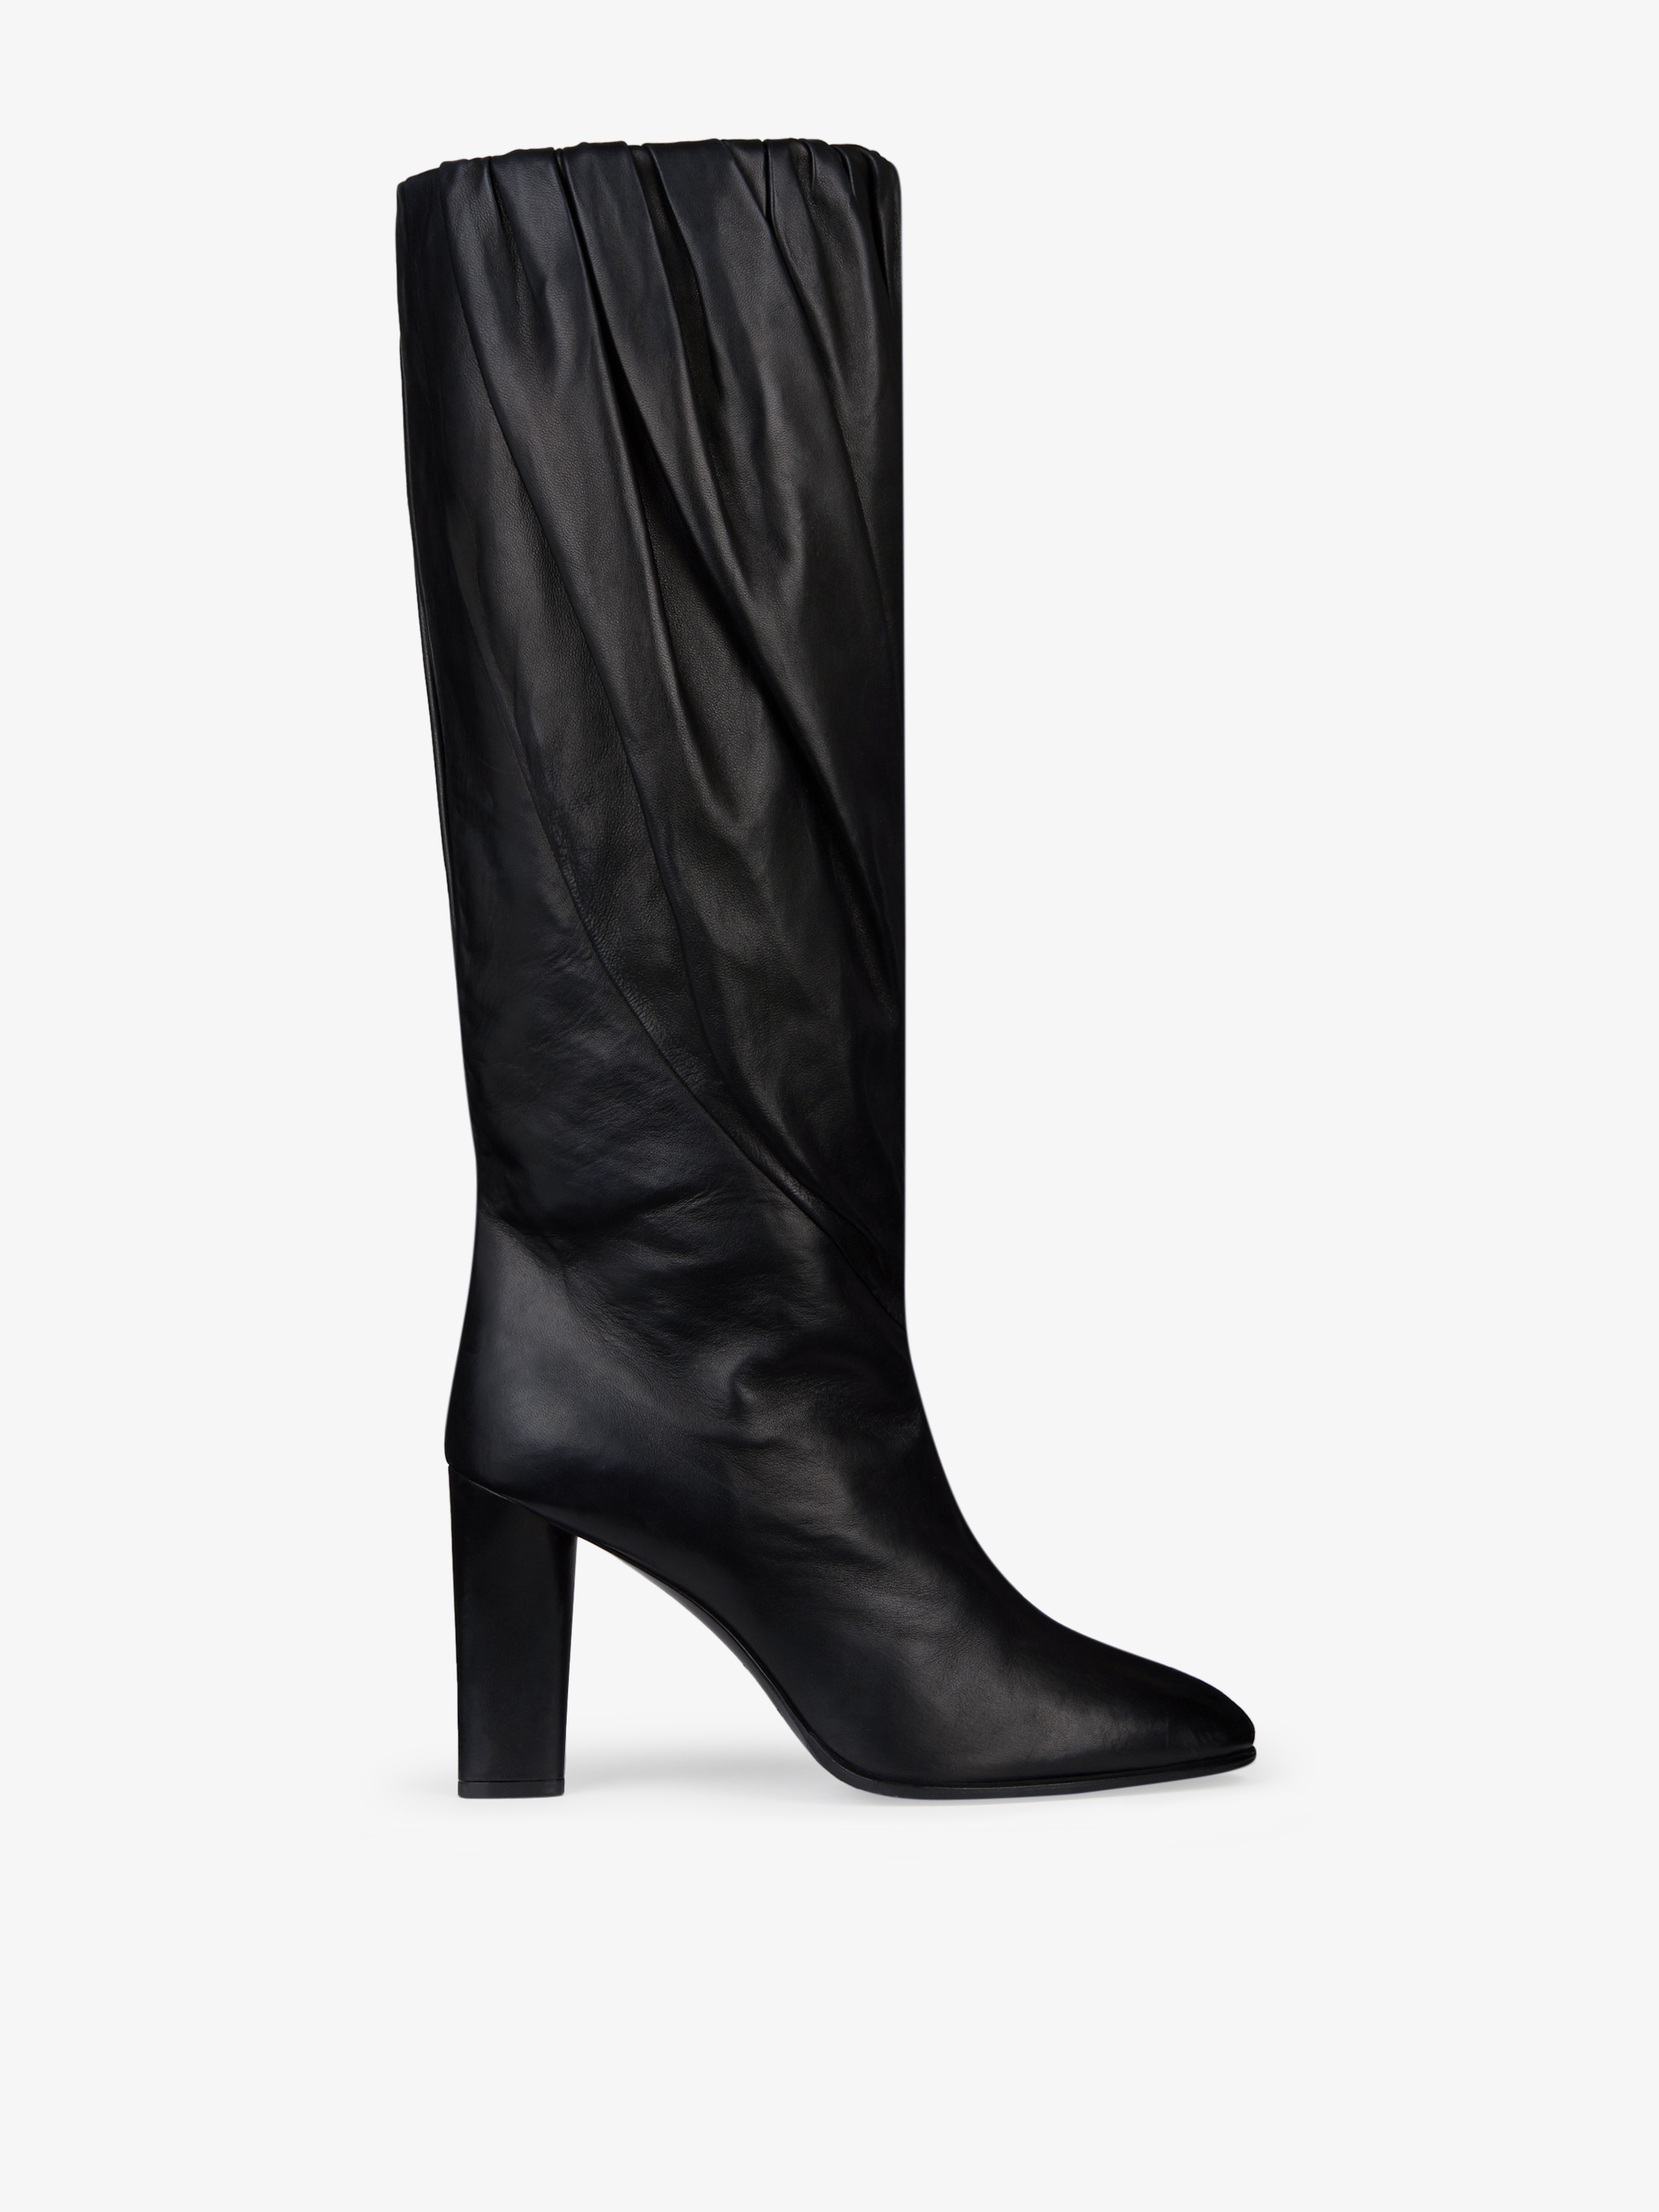 Boots in pleated leather